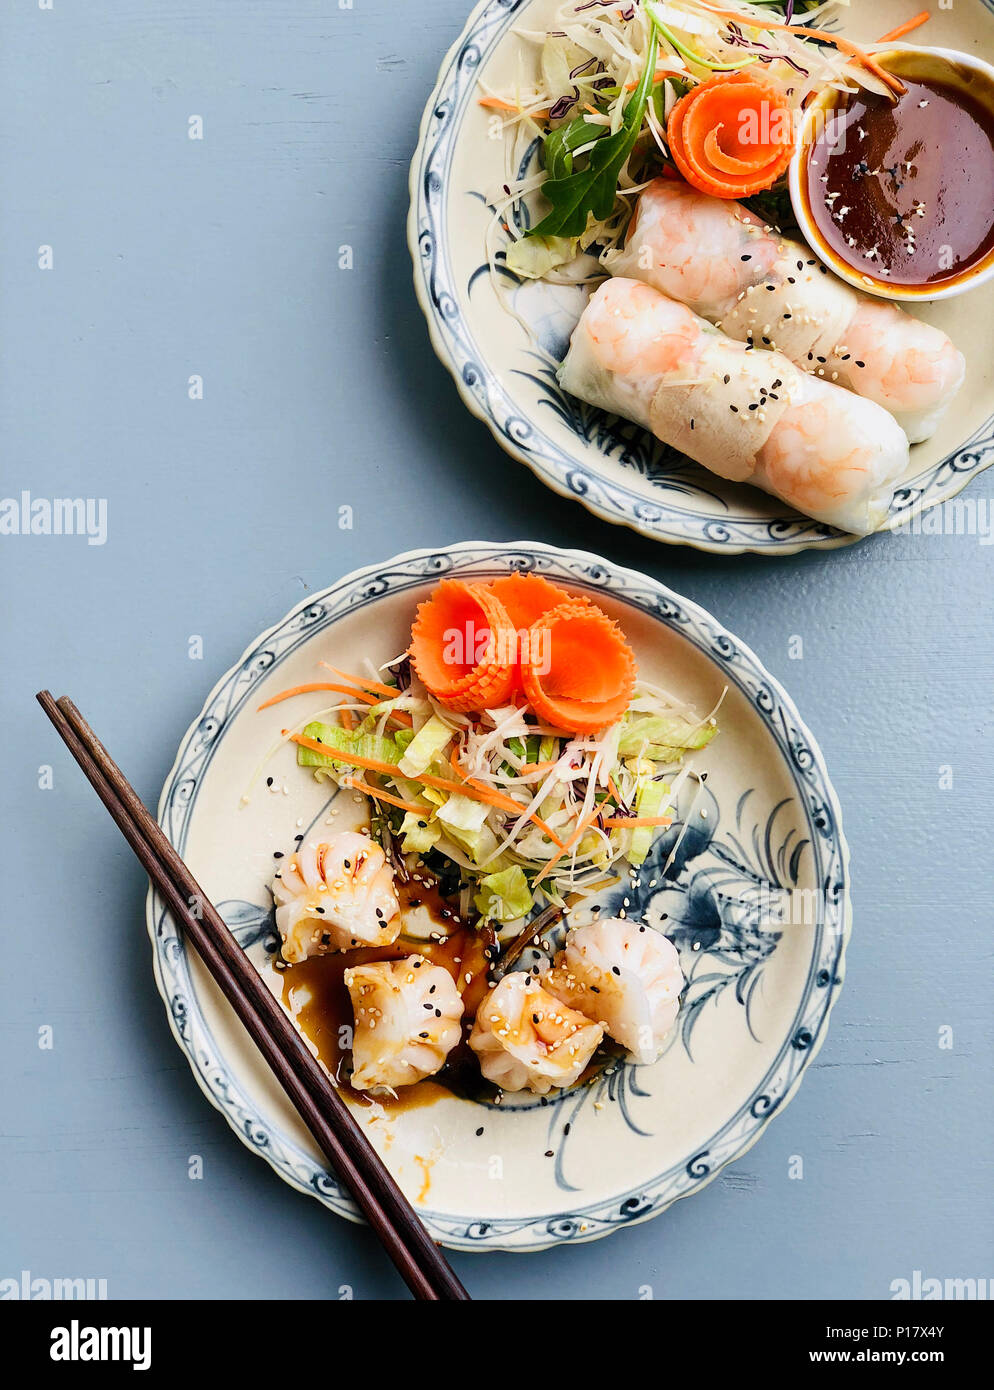 how to make dumplings with rice paper